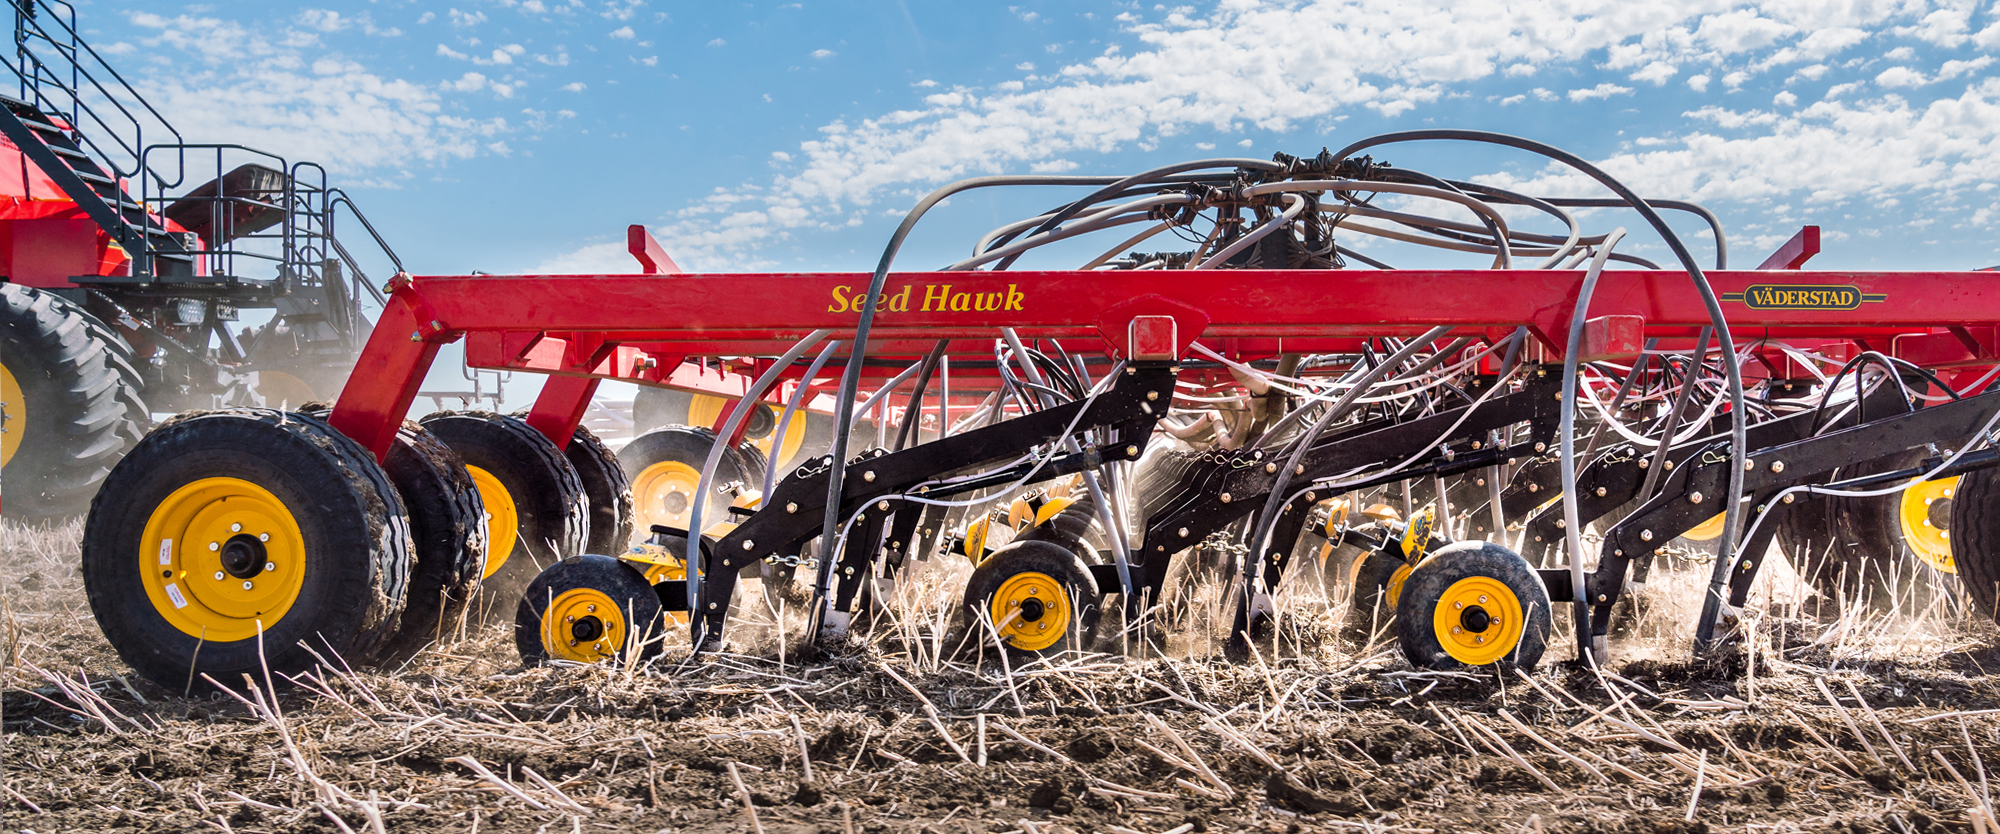 Seed Hawk Toolbar XL